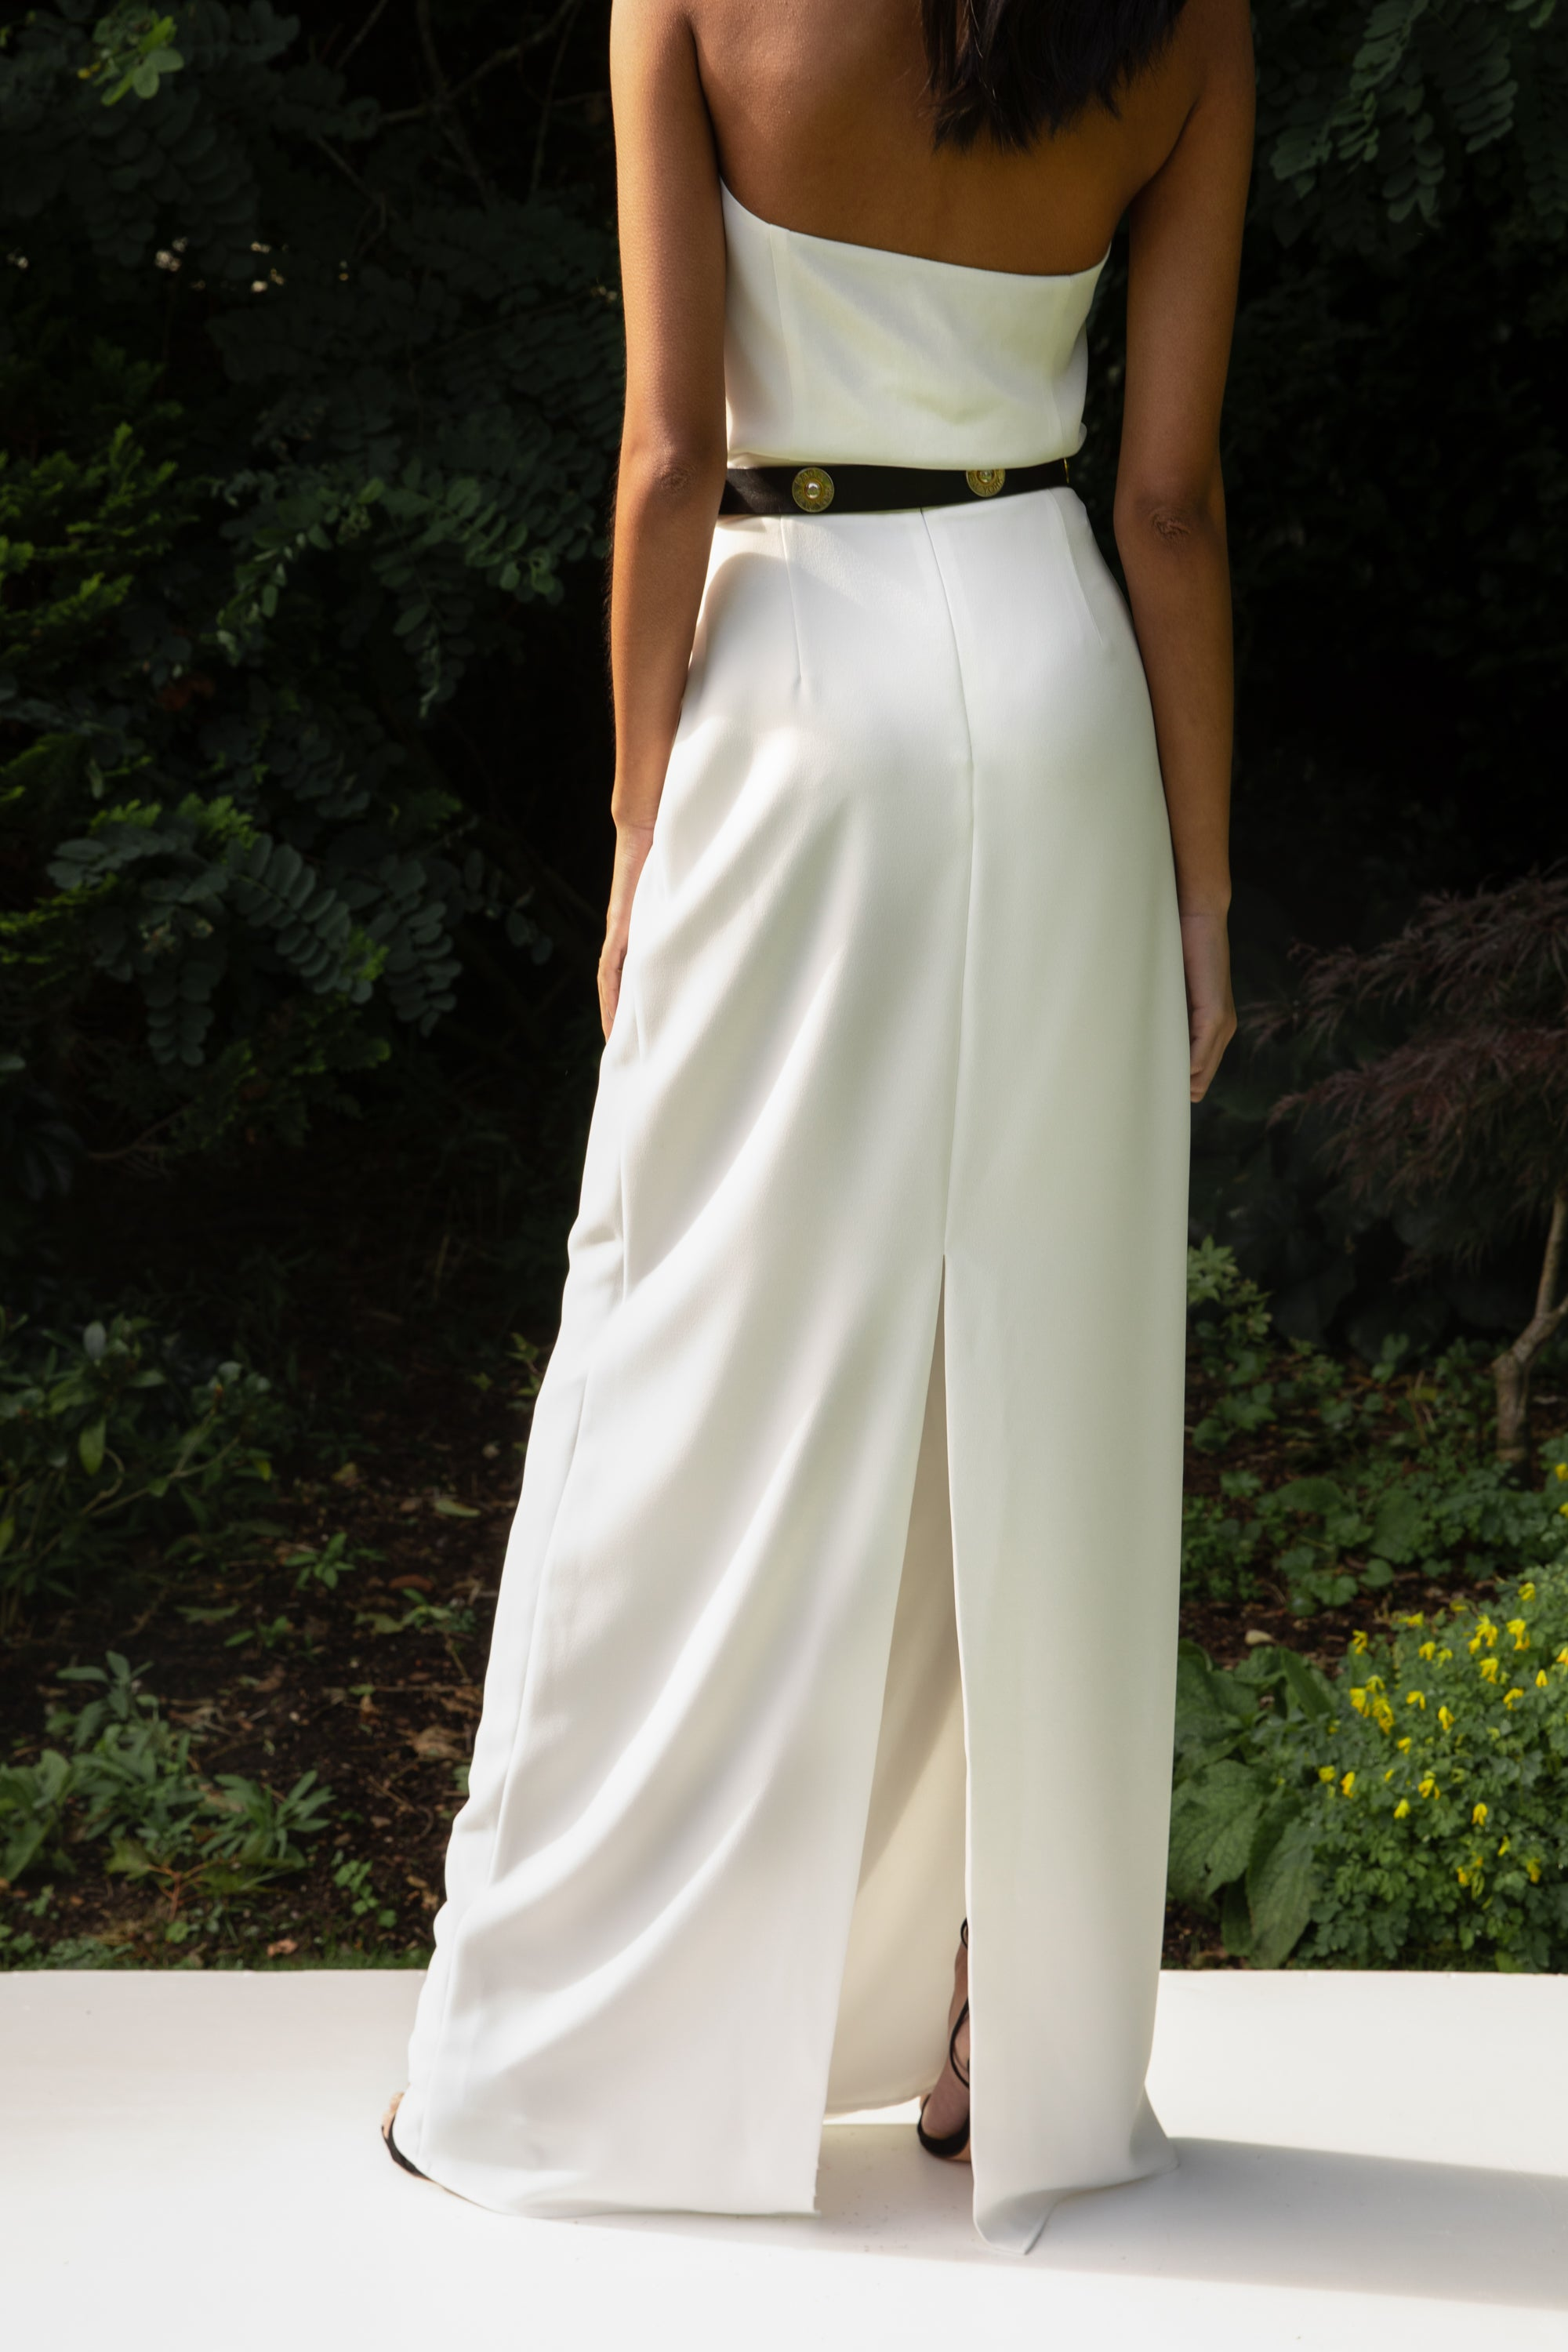 Load image into Gallery viewer, STYLE 029 // CREPE COLUMN SKIRT